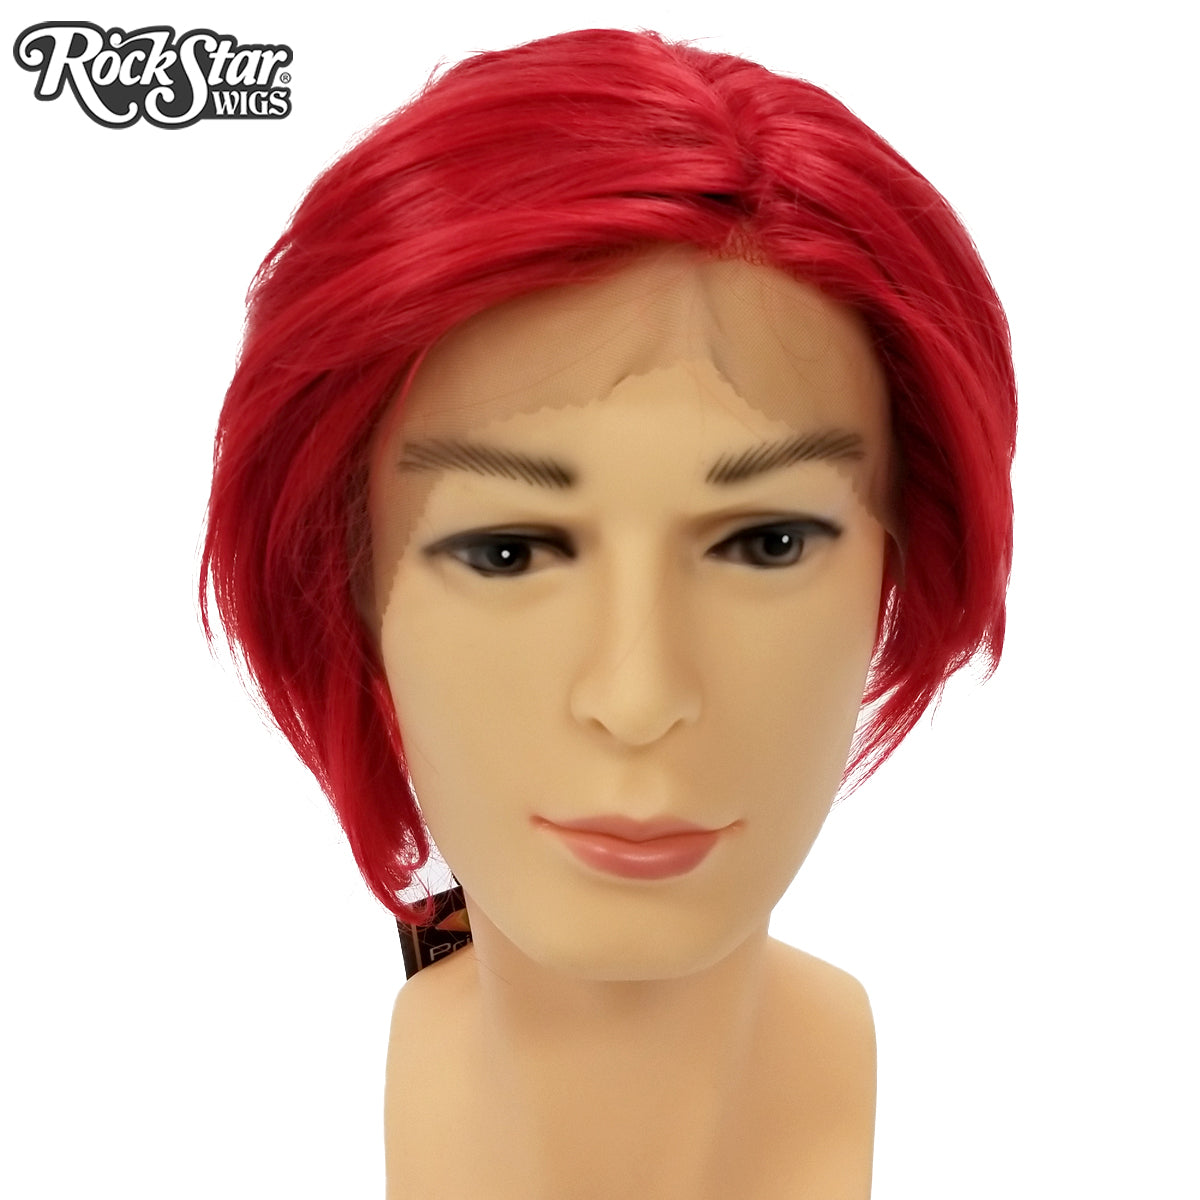 **RETIRED** Lace Front Boy Cut - Red 00807